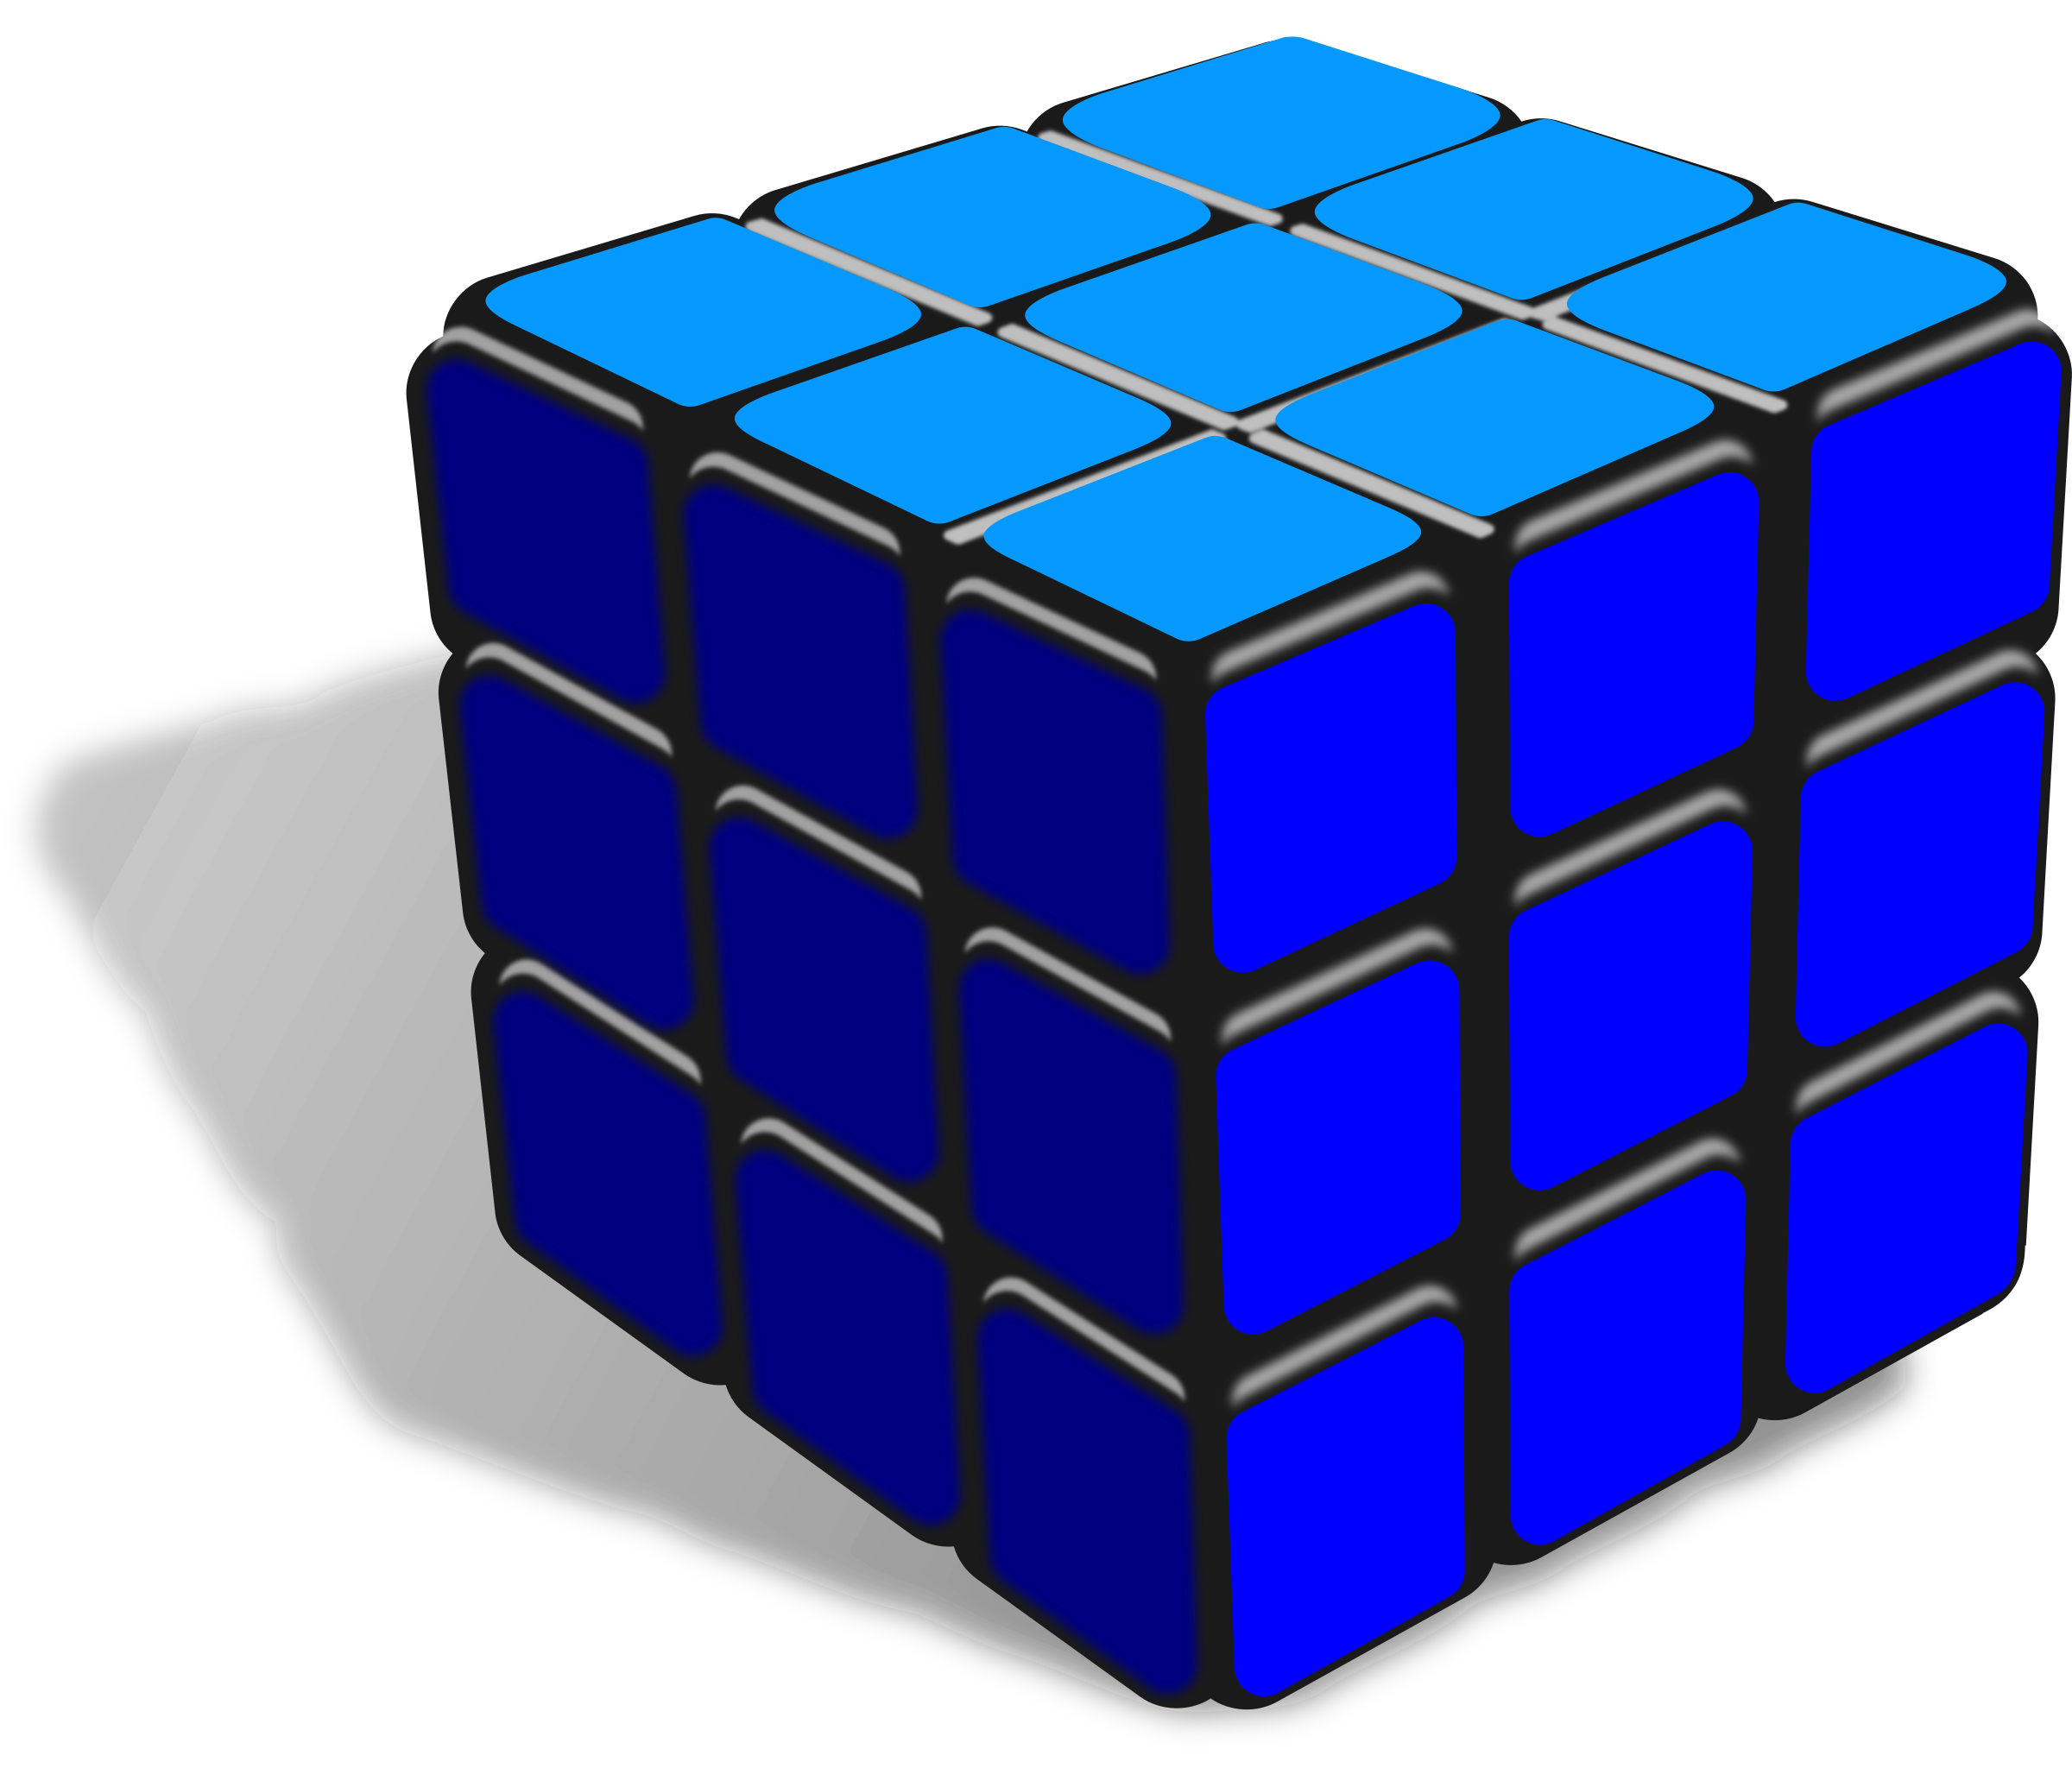 Cube one color by Keistutis